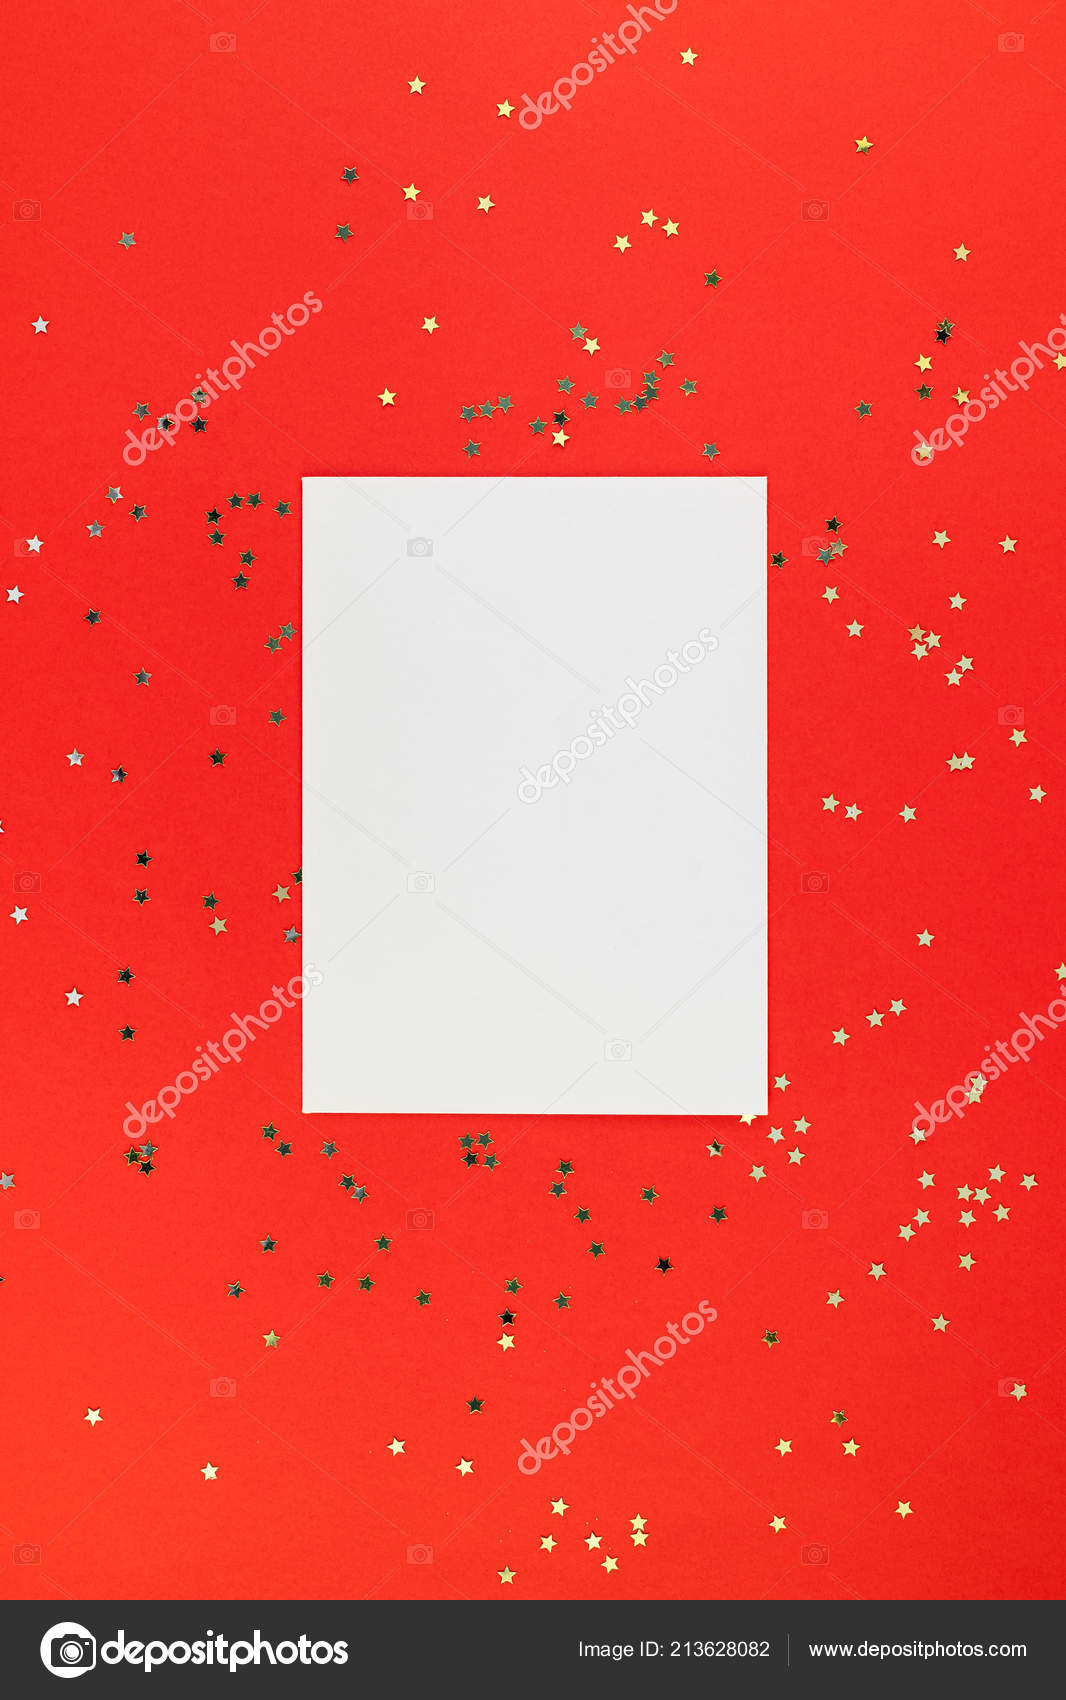 Christmas Greetings Letter.Creative New Year Christmas Greetings Letter Mockup Flat Lay